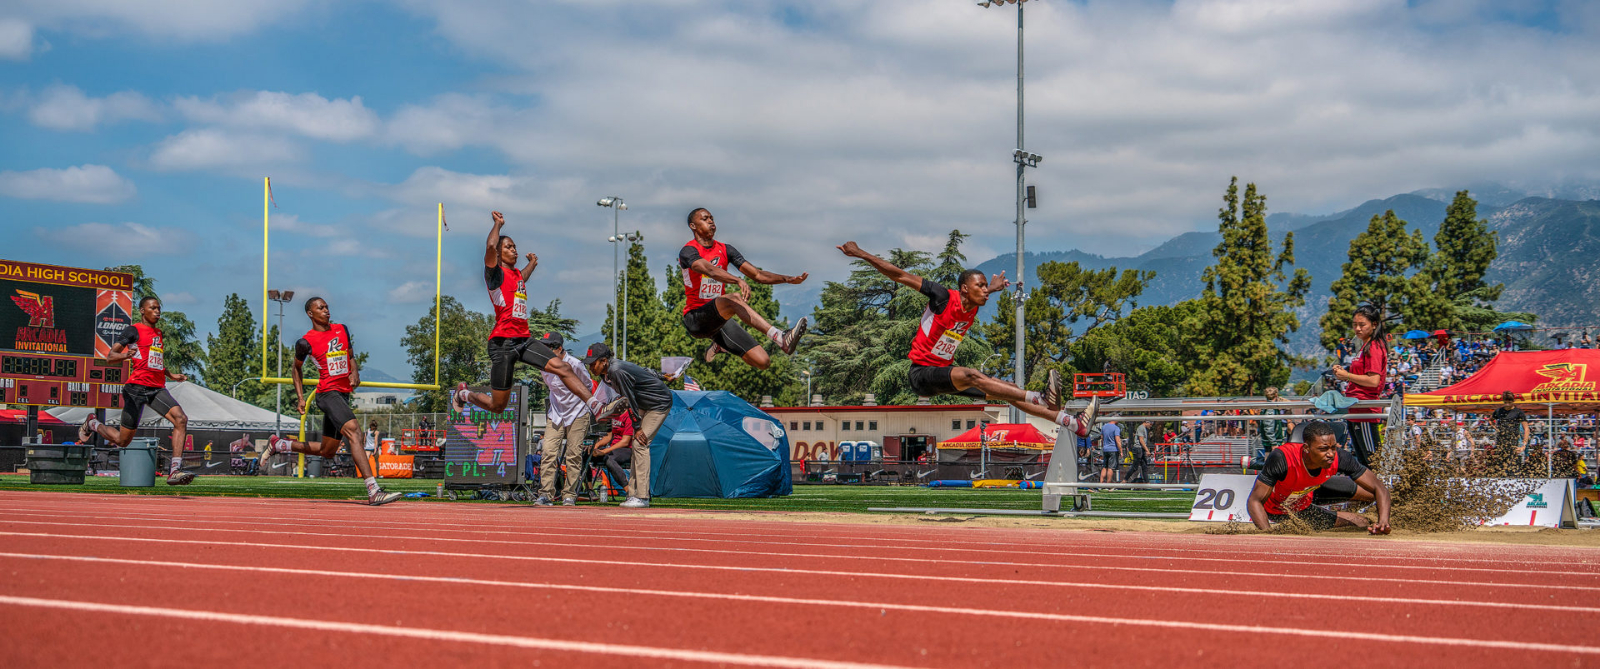 Damion Loman CIF Div. 3 Long Jump Championship Highlights PSHS Very Successful CIF Track and Field Day!